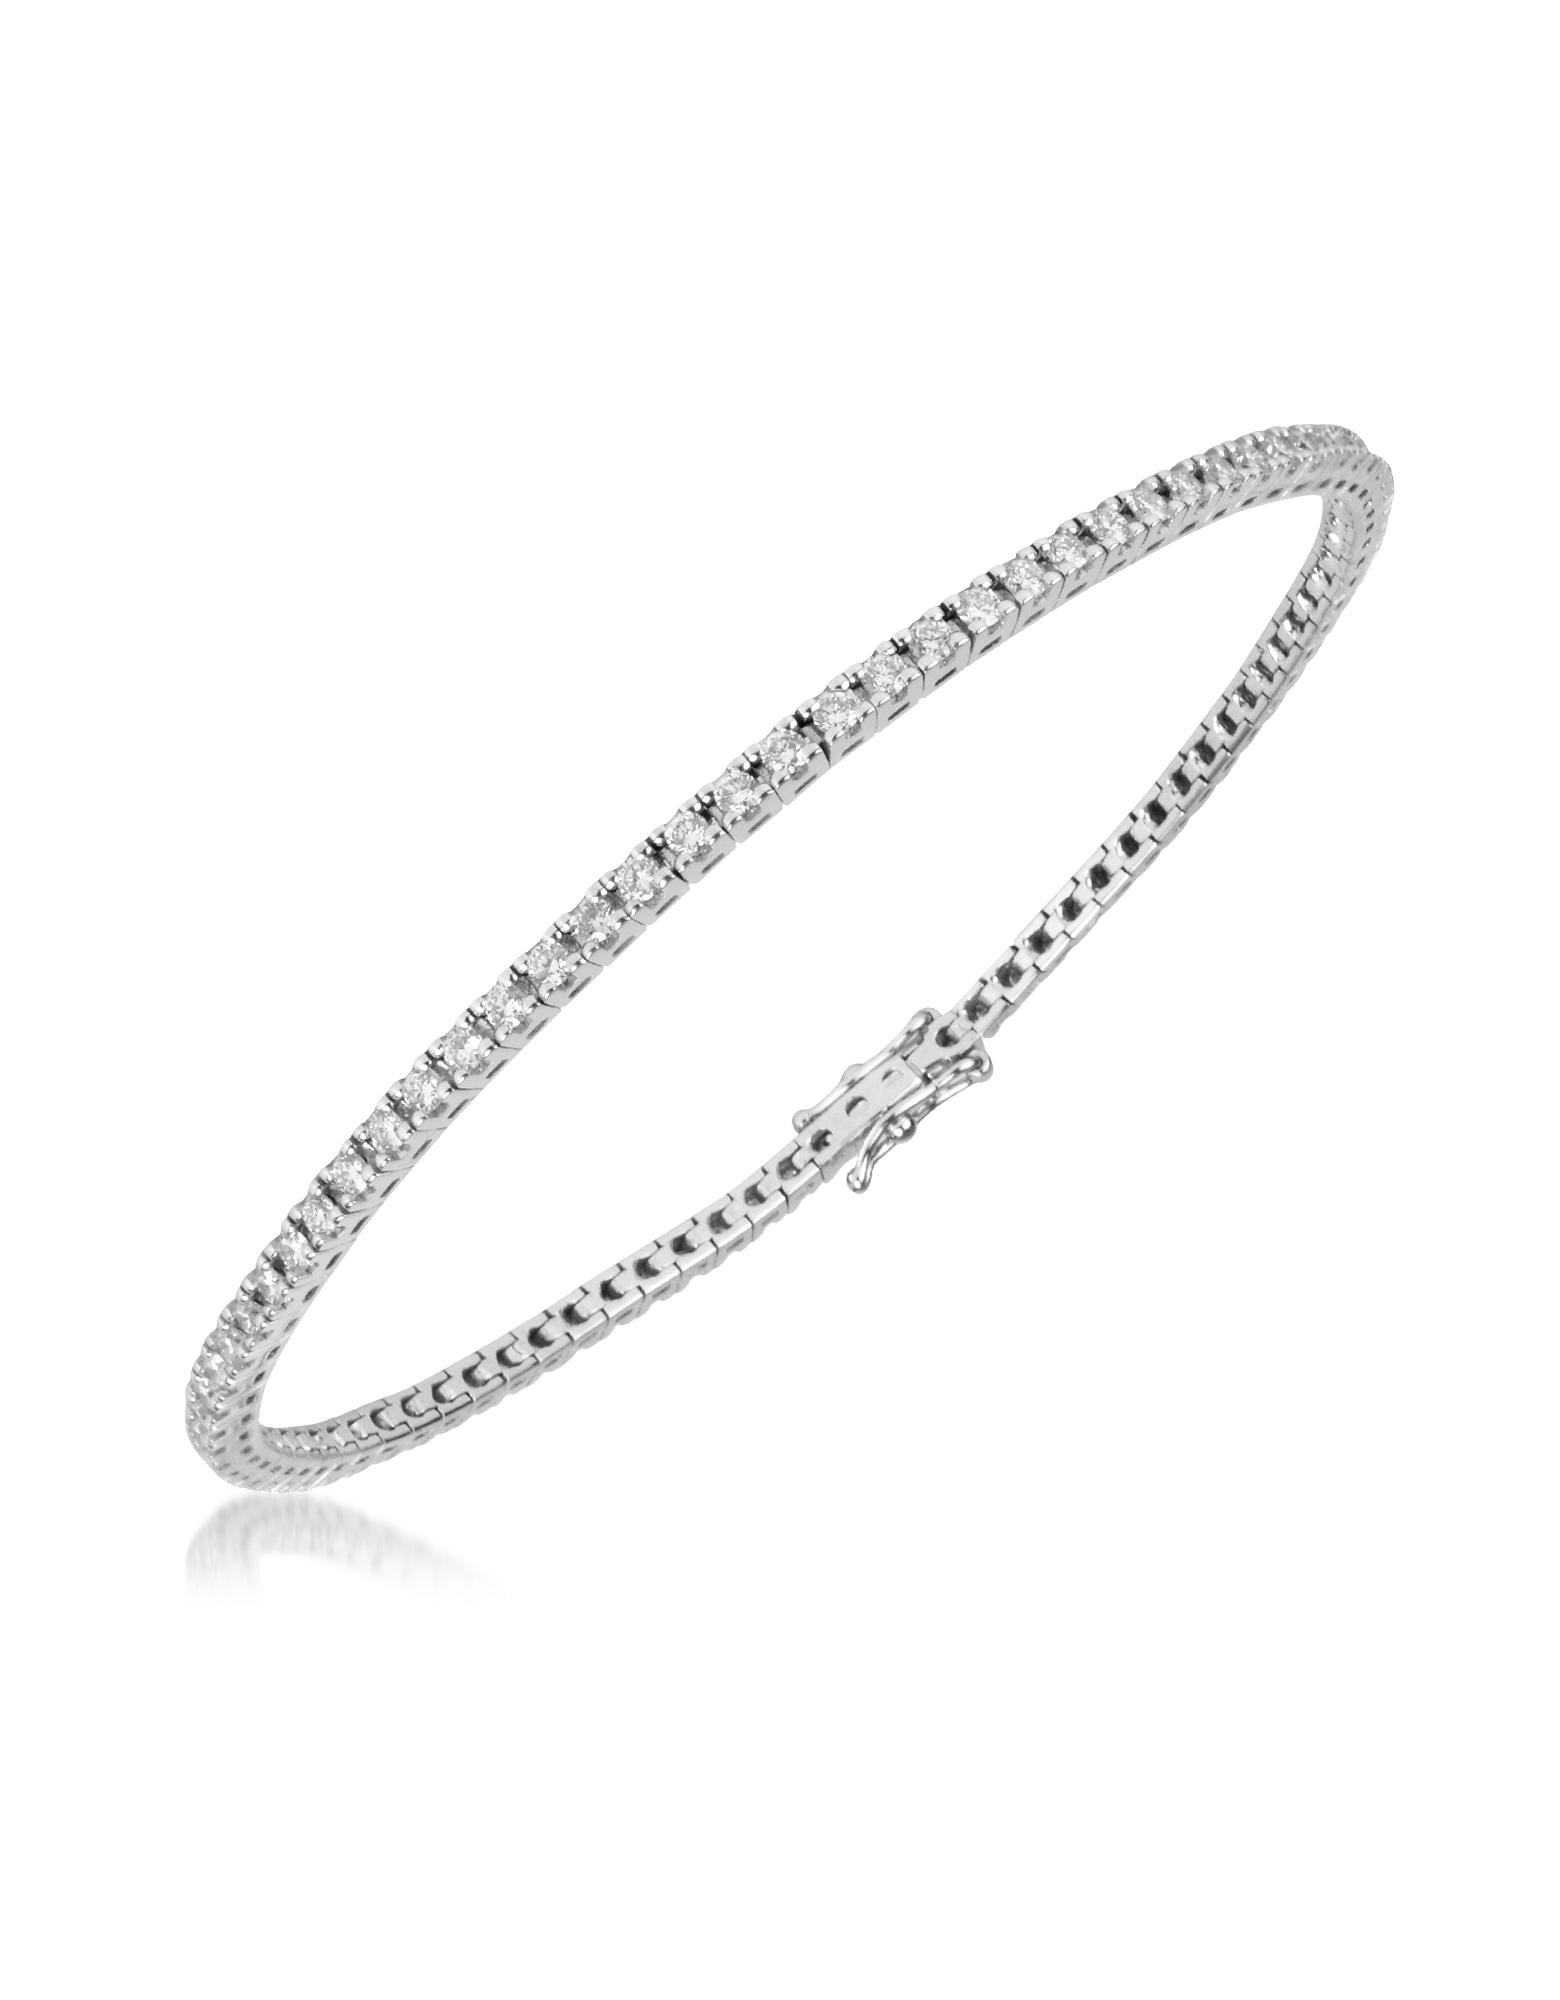 Image of 1.61 ctw White Diamond Eternity 18K Gold Tennis Bracelet